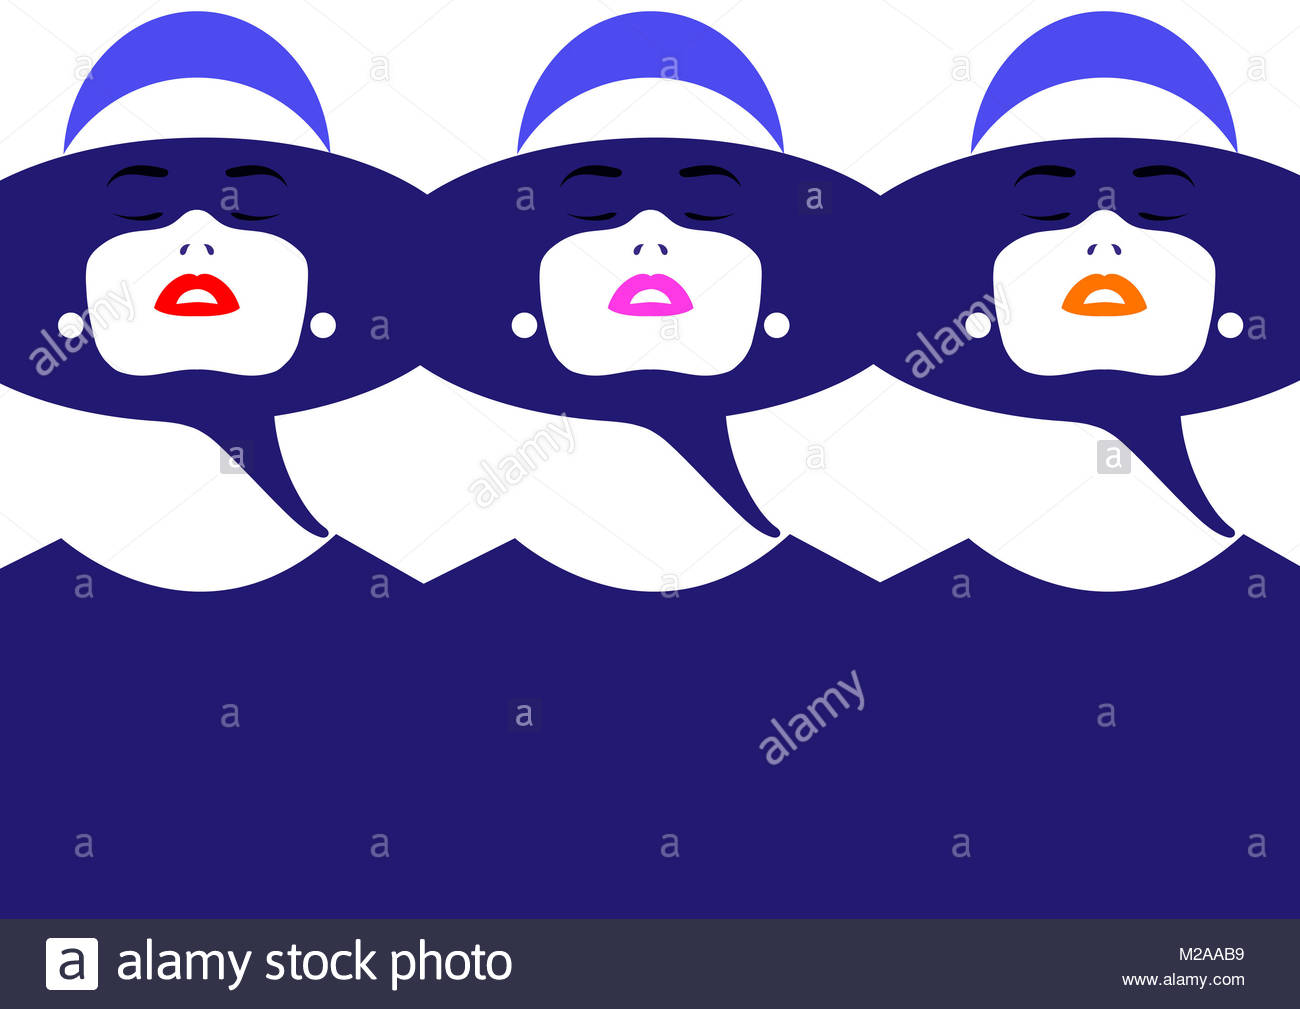 Repeated face of beautiful woman wearing different colored lipstick - Stock Image